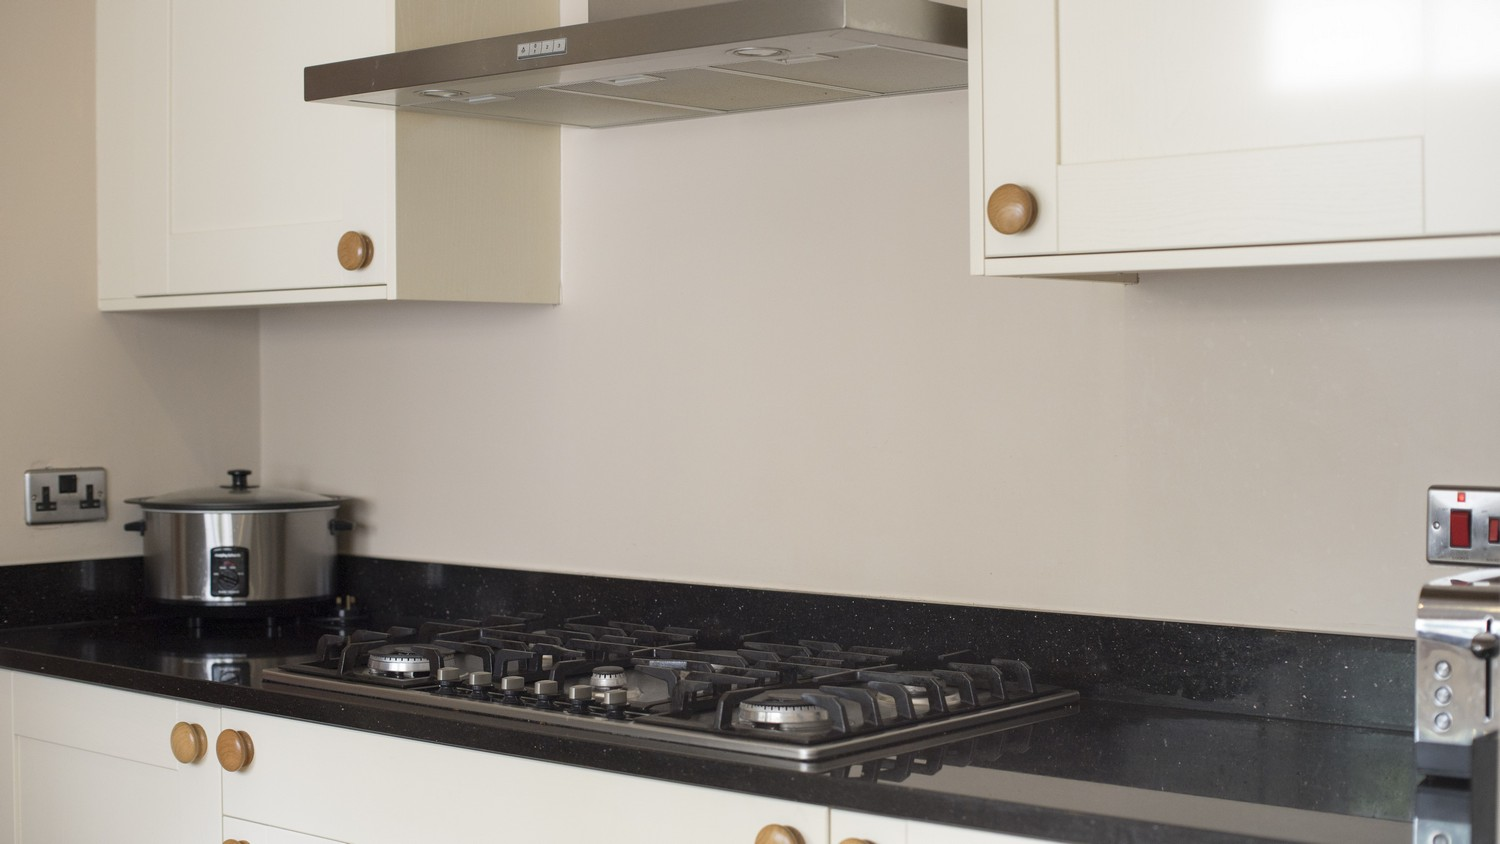 Close up of the large cooking hob and extractor fan.